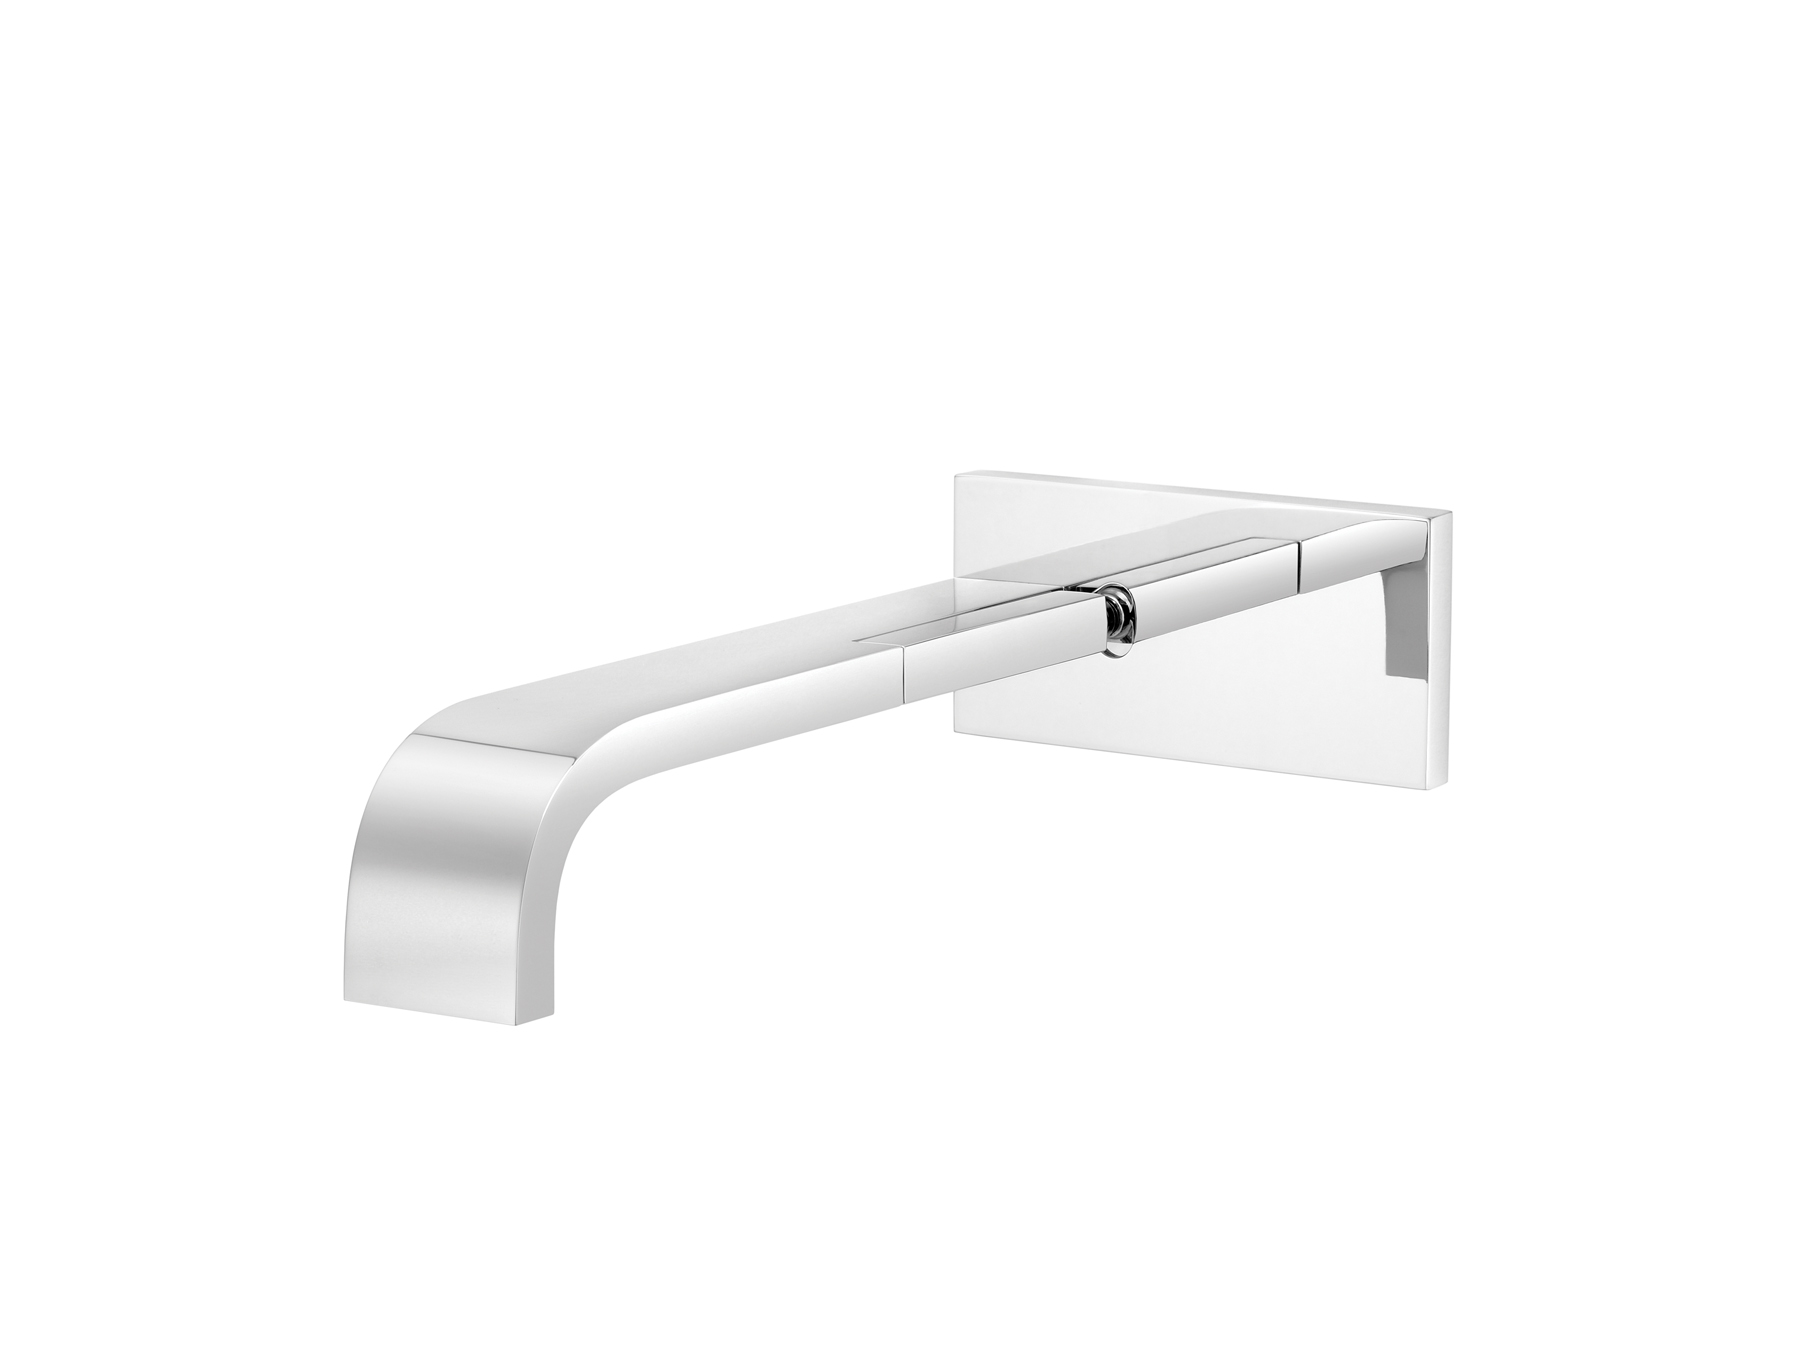 Concealed single-lever washbasin mixer 4585.--.51